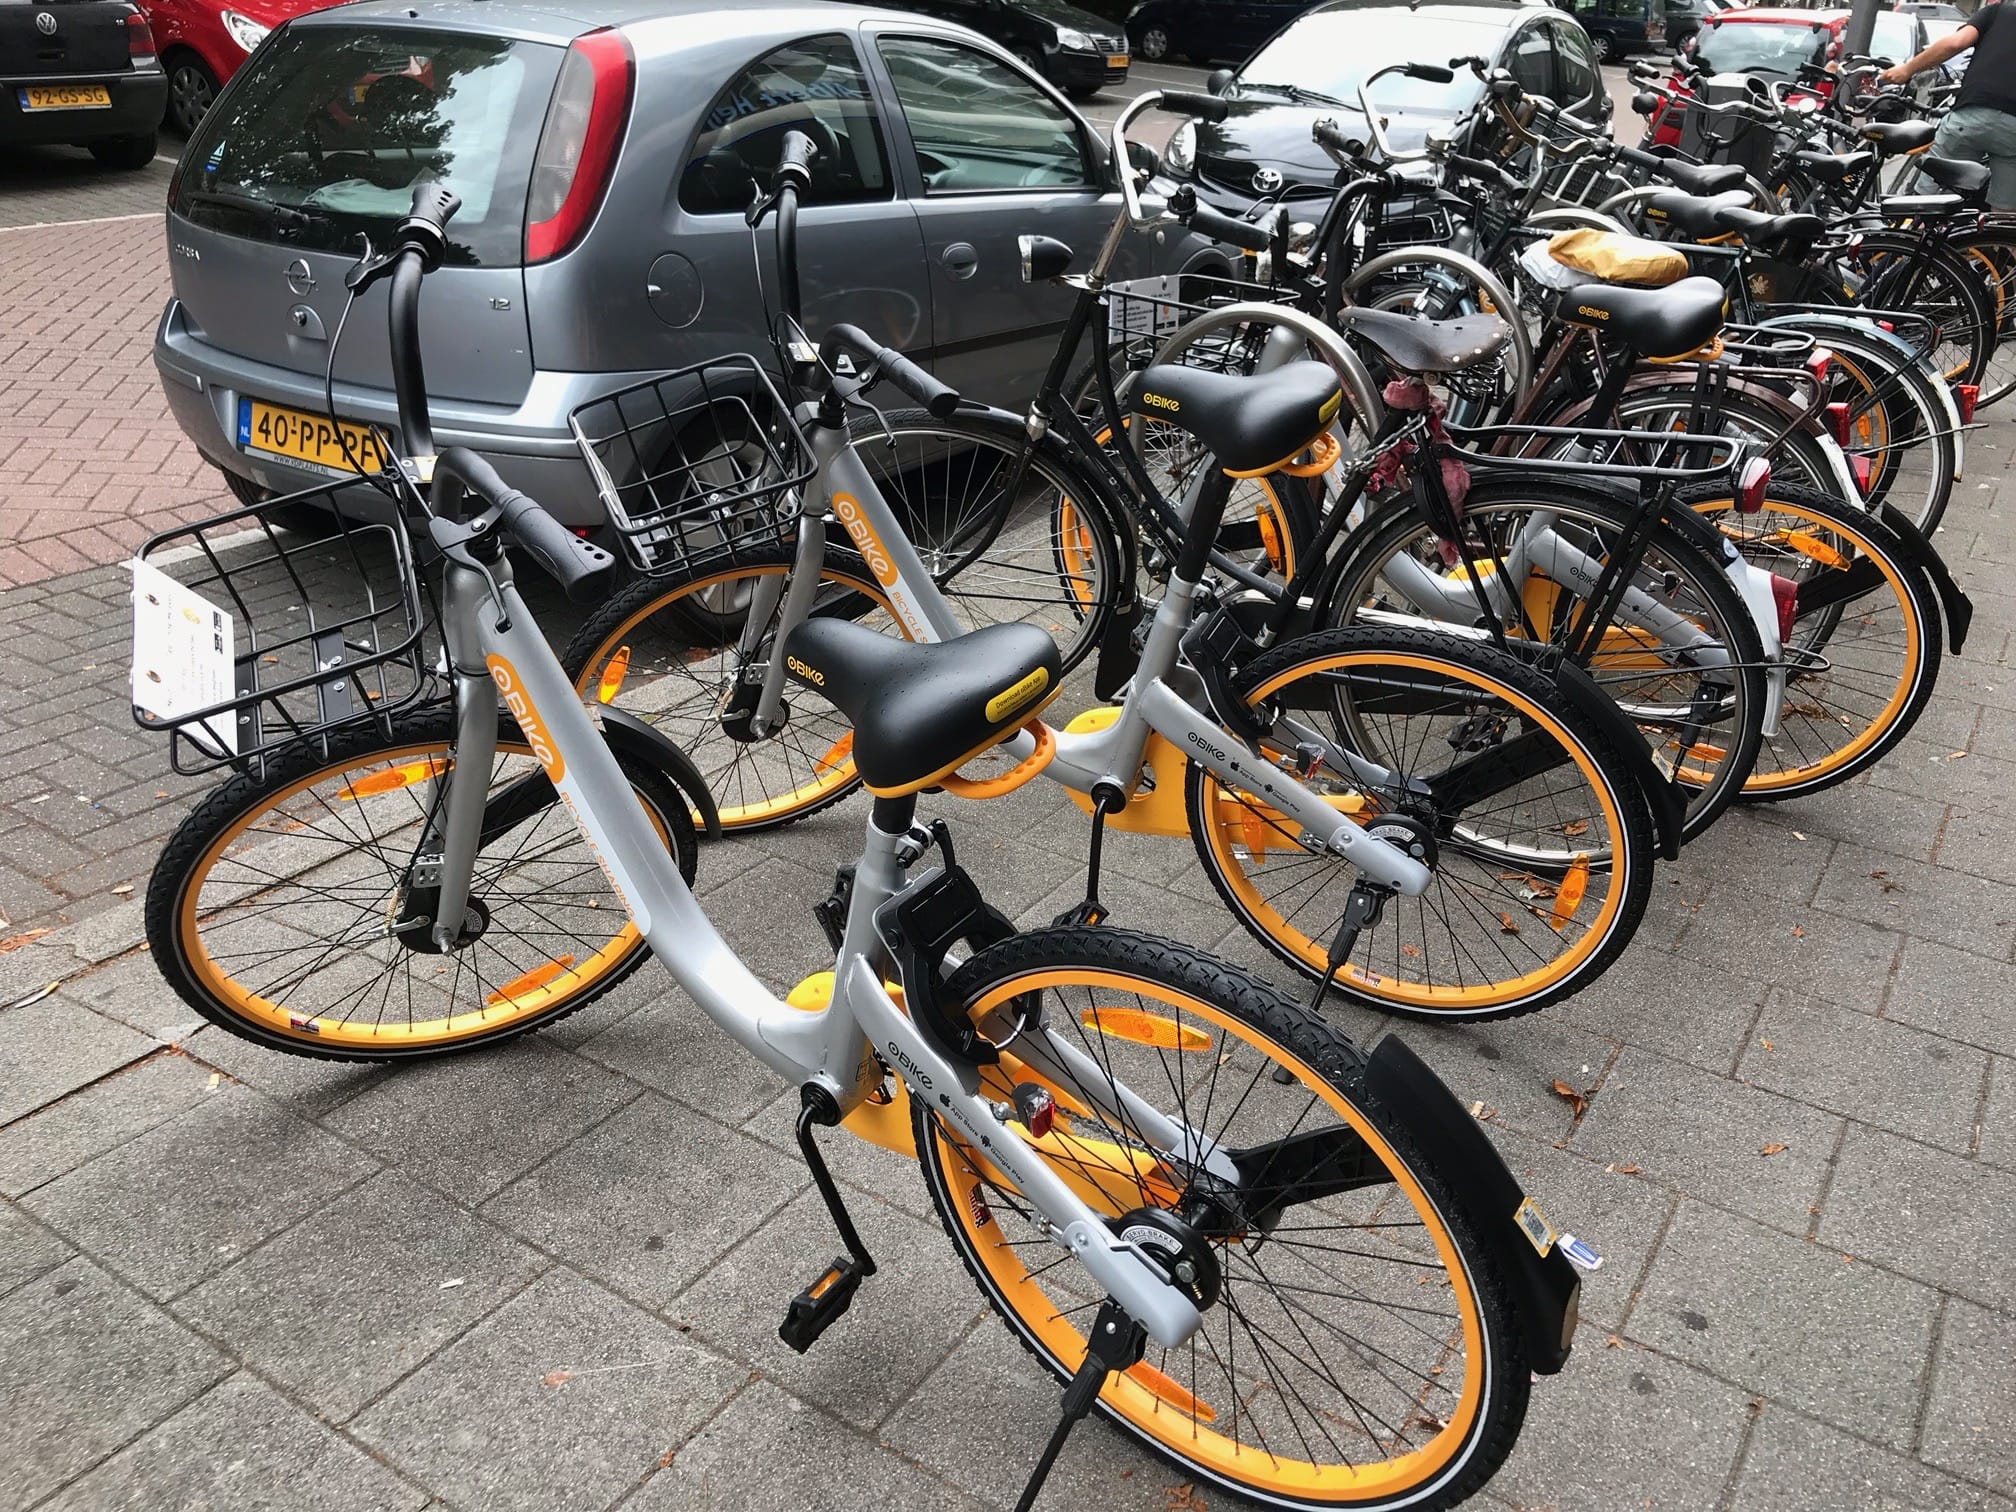 obike review 005